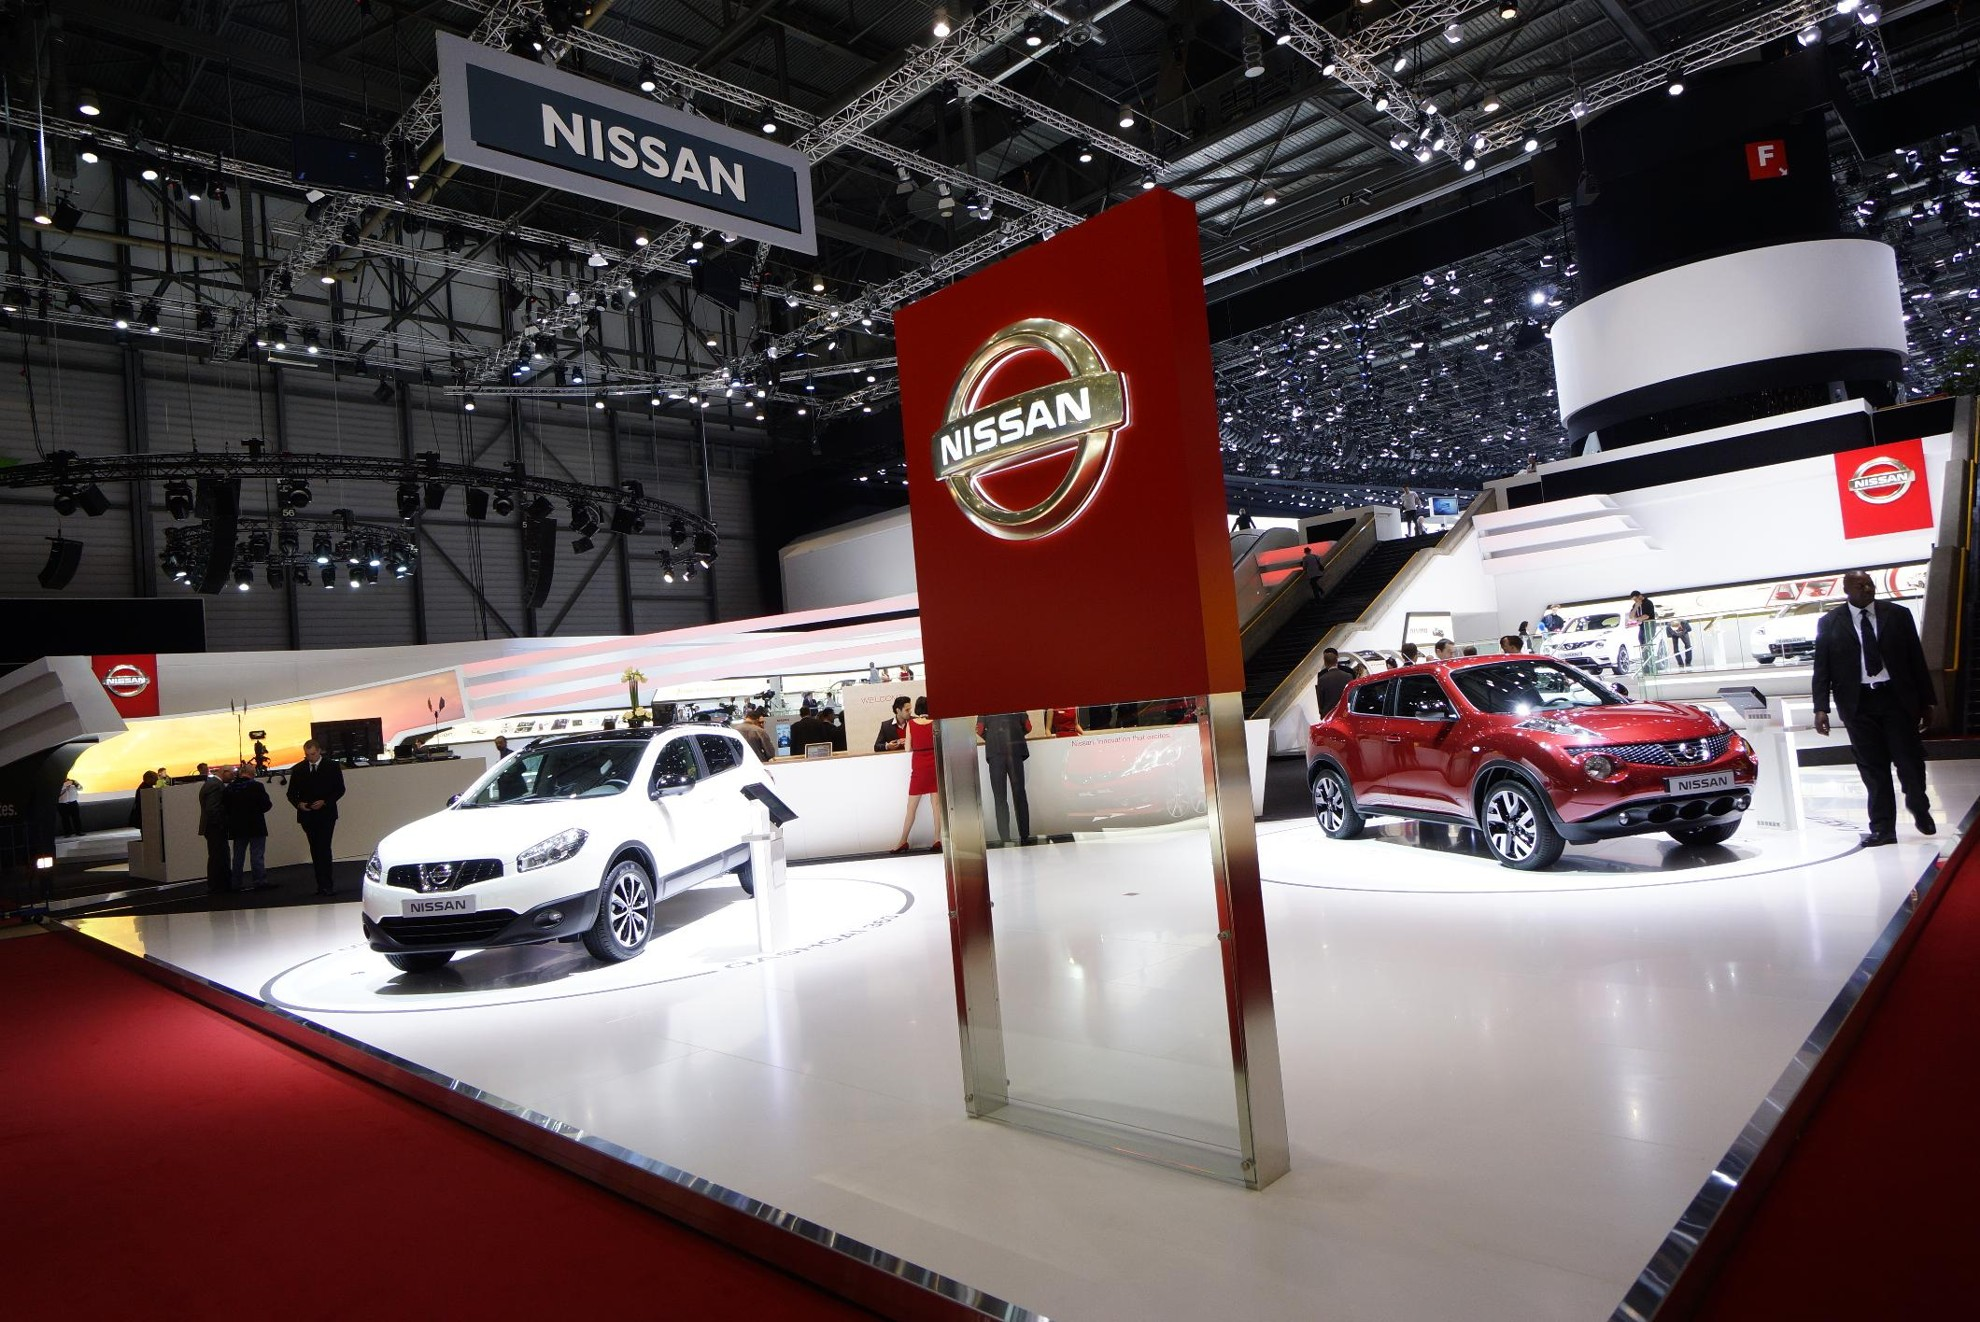 Nissan Exhibition Stand At Geneva Motor Show